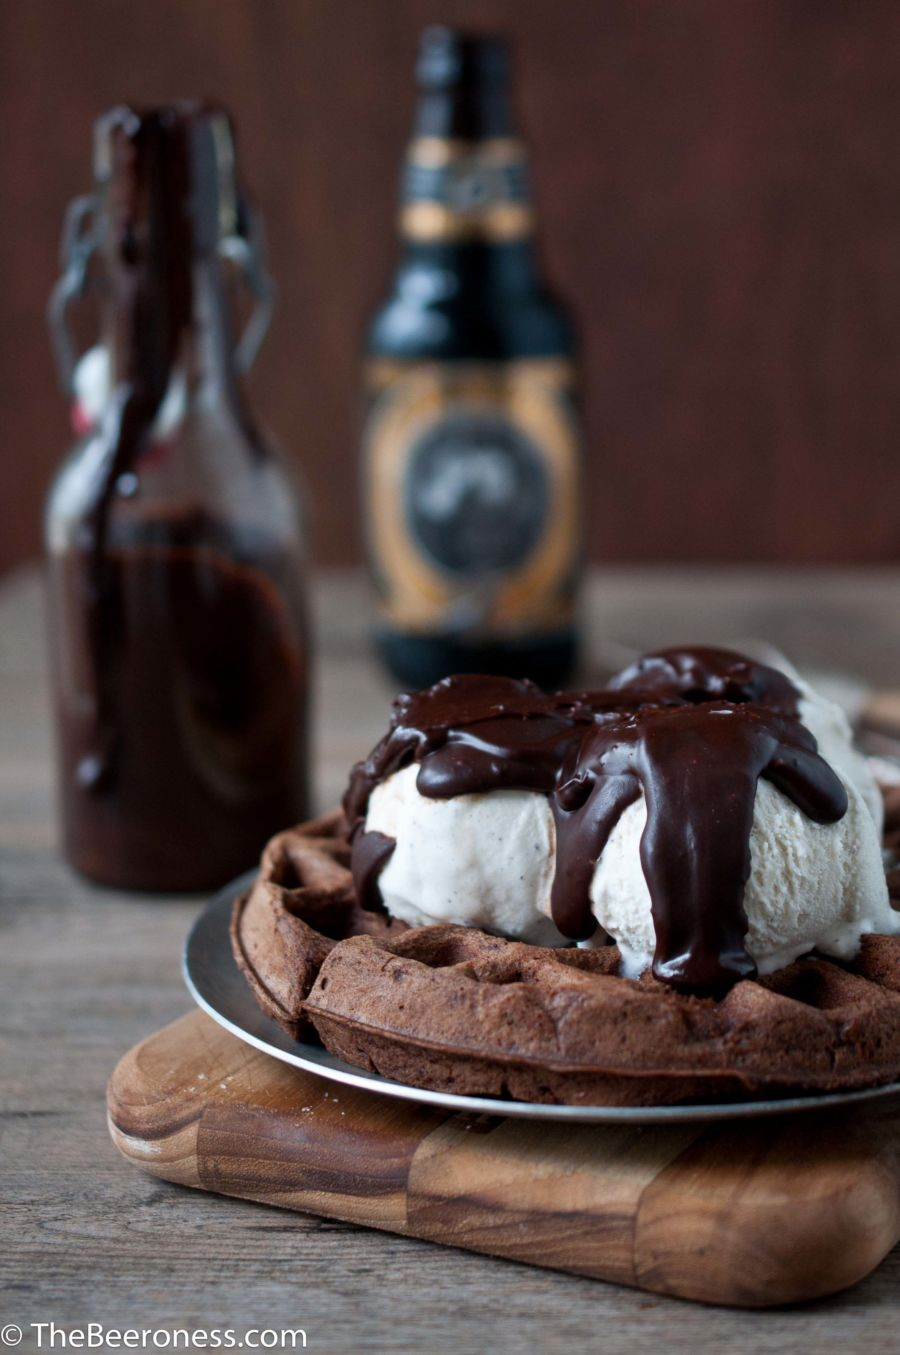 Chocolate Stout Waffle Sundae with Chocolate Stout Fudge Sauce